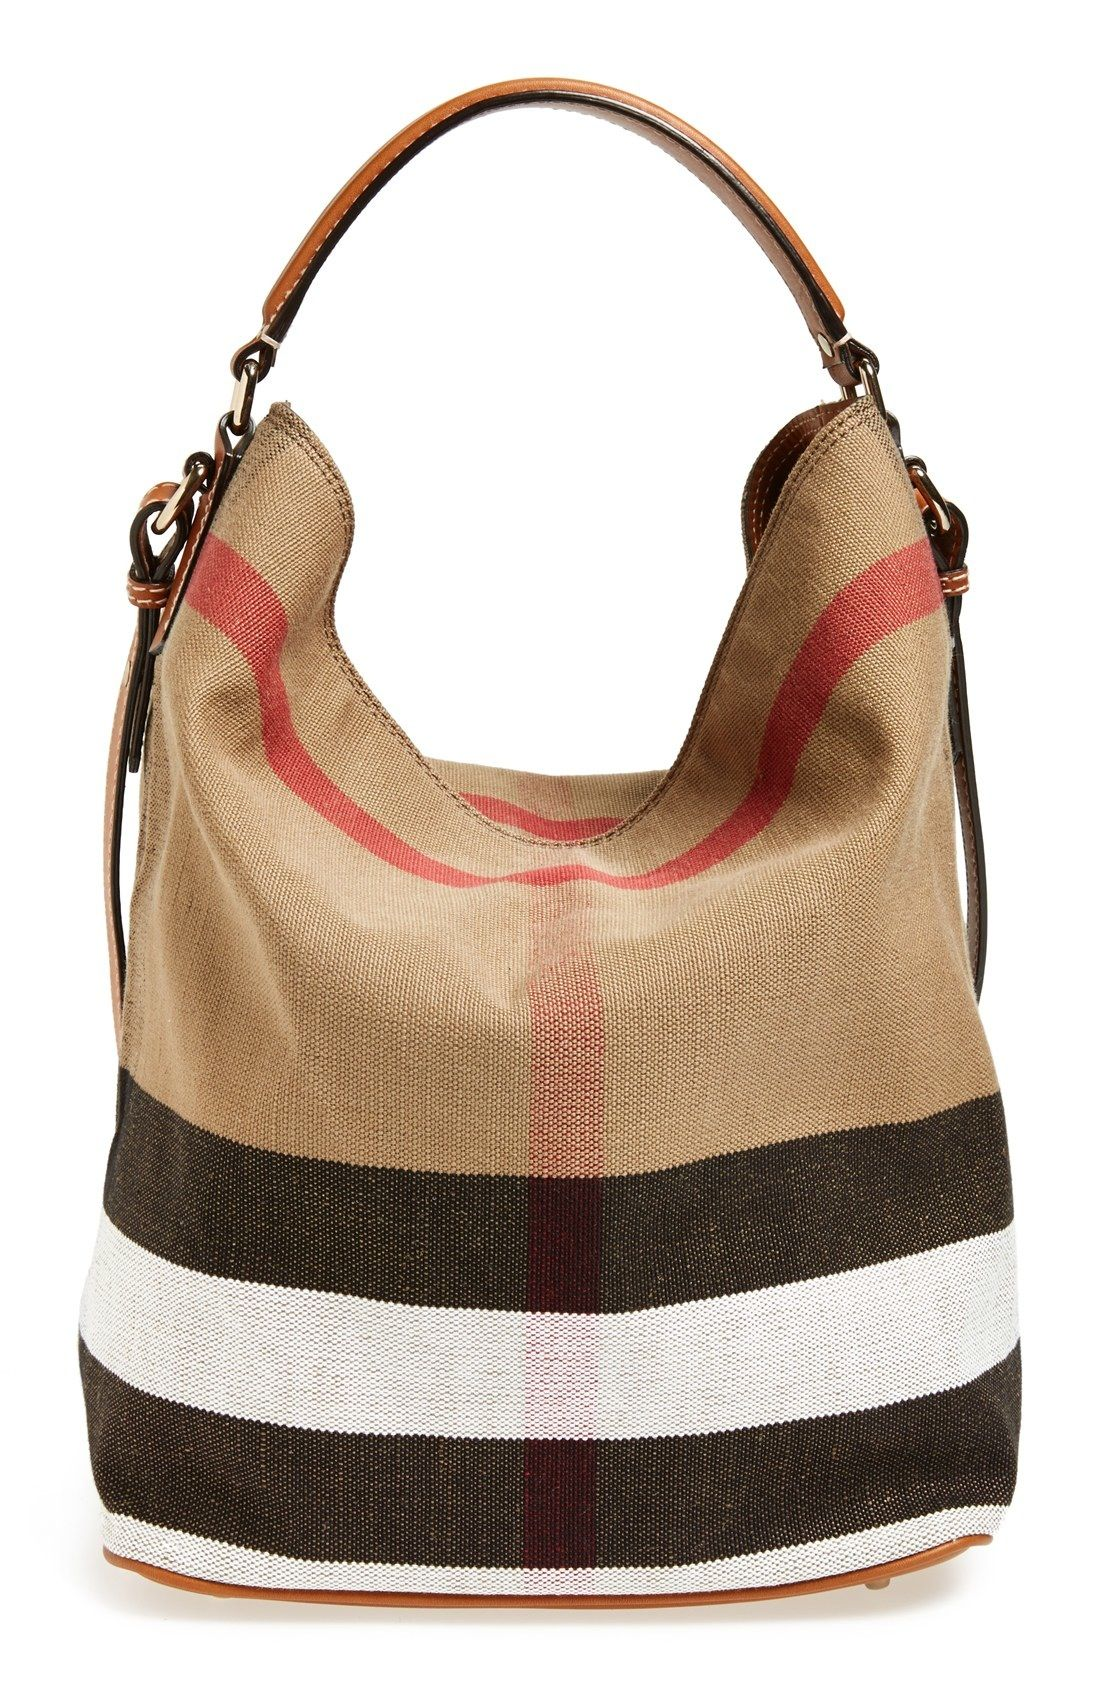 Burberry Brit  Medium Susanna  Check Print Bucket Bag available at   Nordstrom 460b95144e172